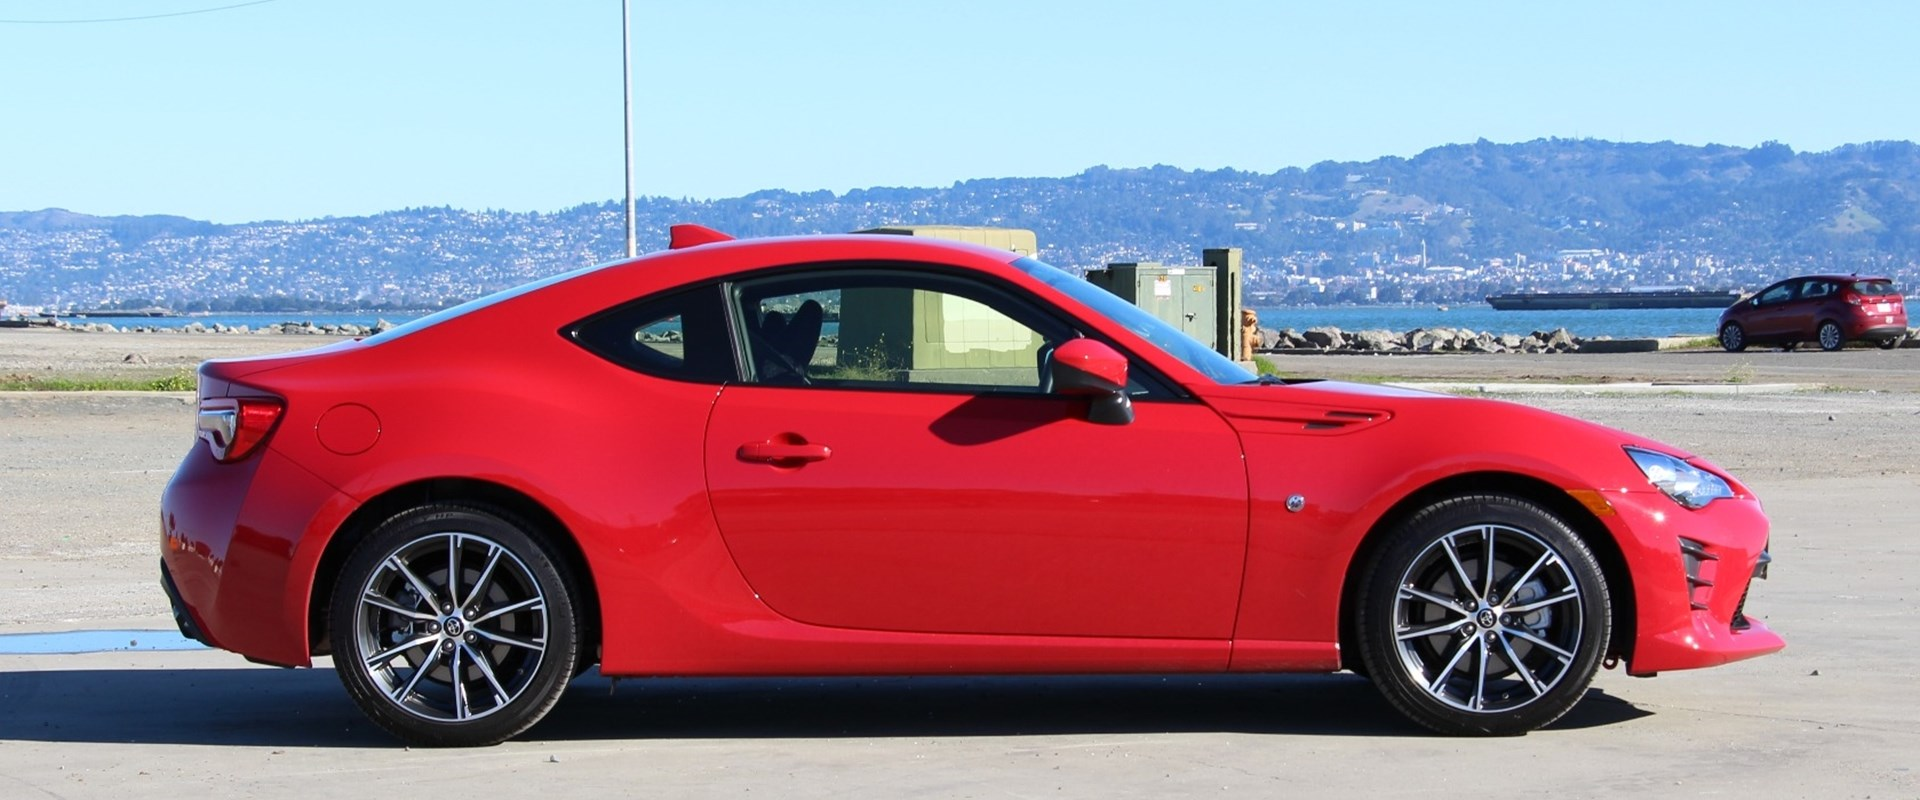 2016 Toyota GT86 Review: Here's Why We Love It - CarBuzz